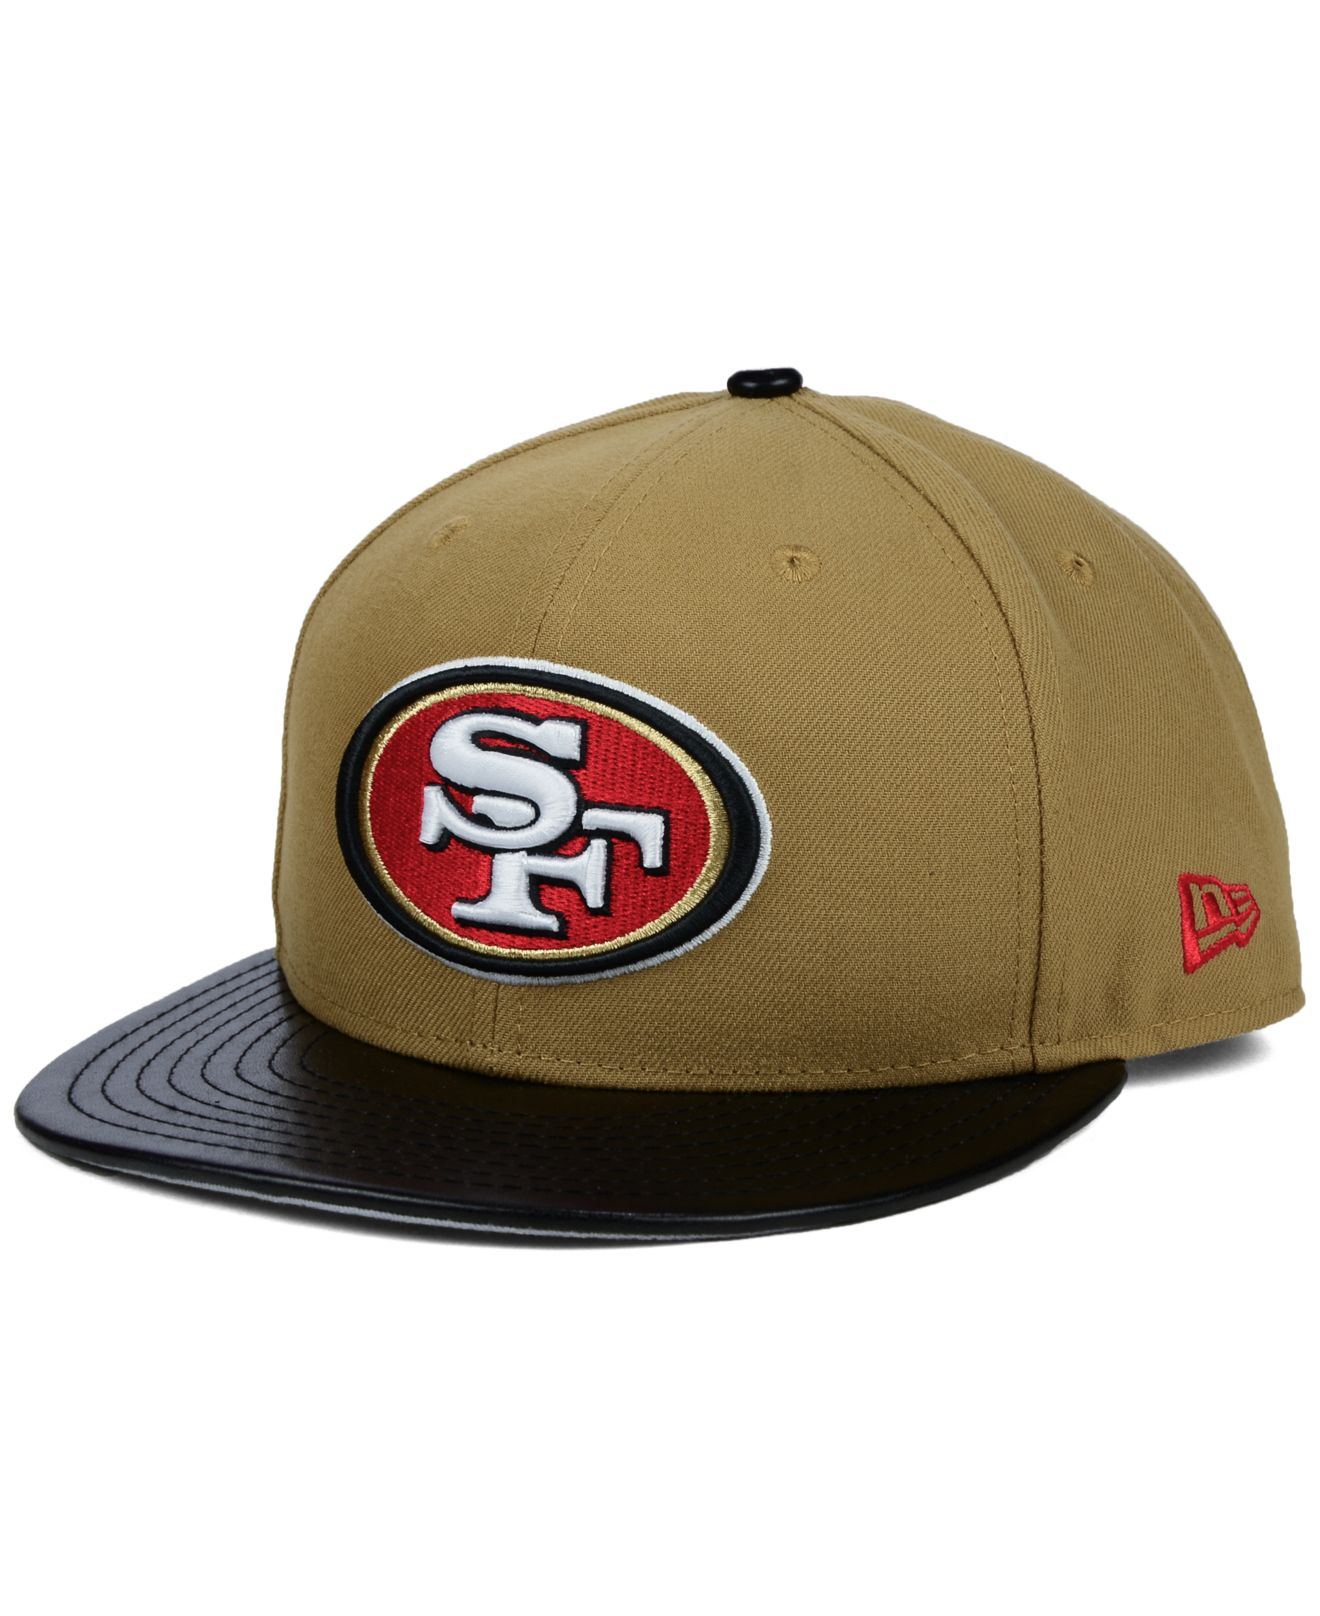 discount code for lyst ktz san francisco 49ers faux leather wheat 9fifty  snapback 97bcb 8e38d ca18f8b37a3c